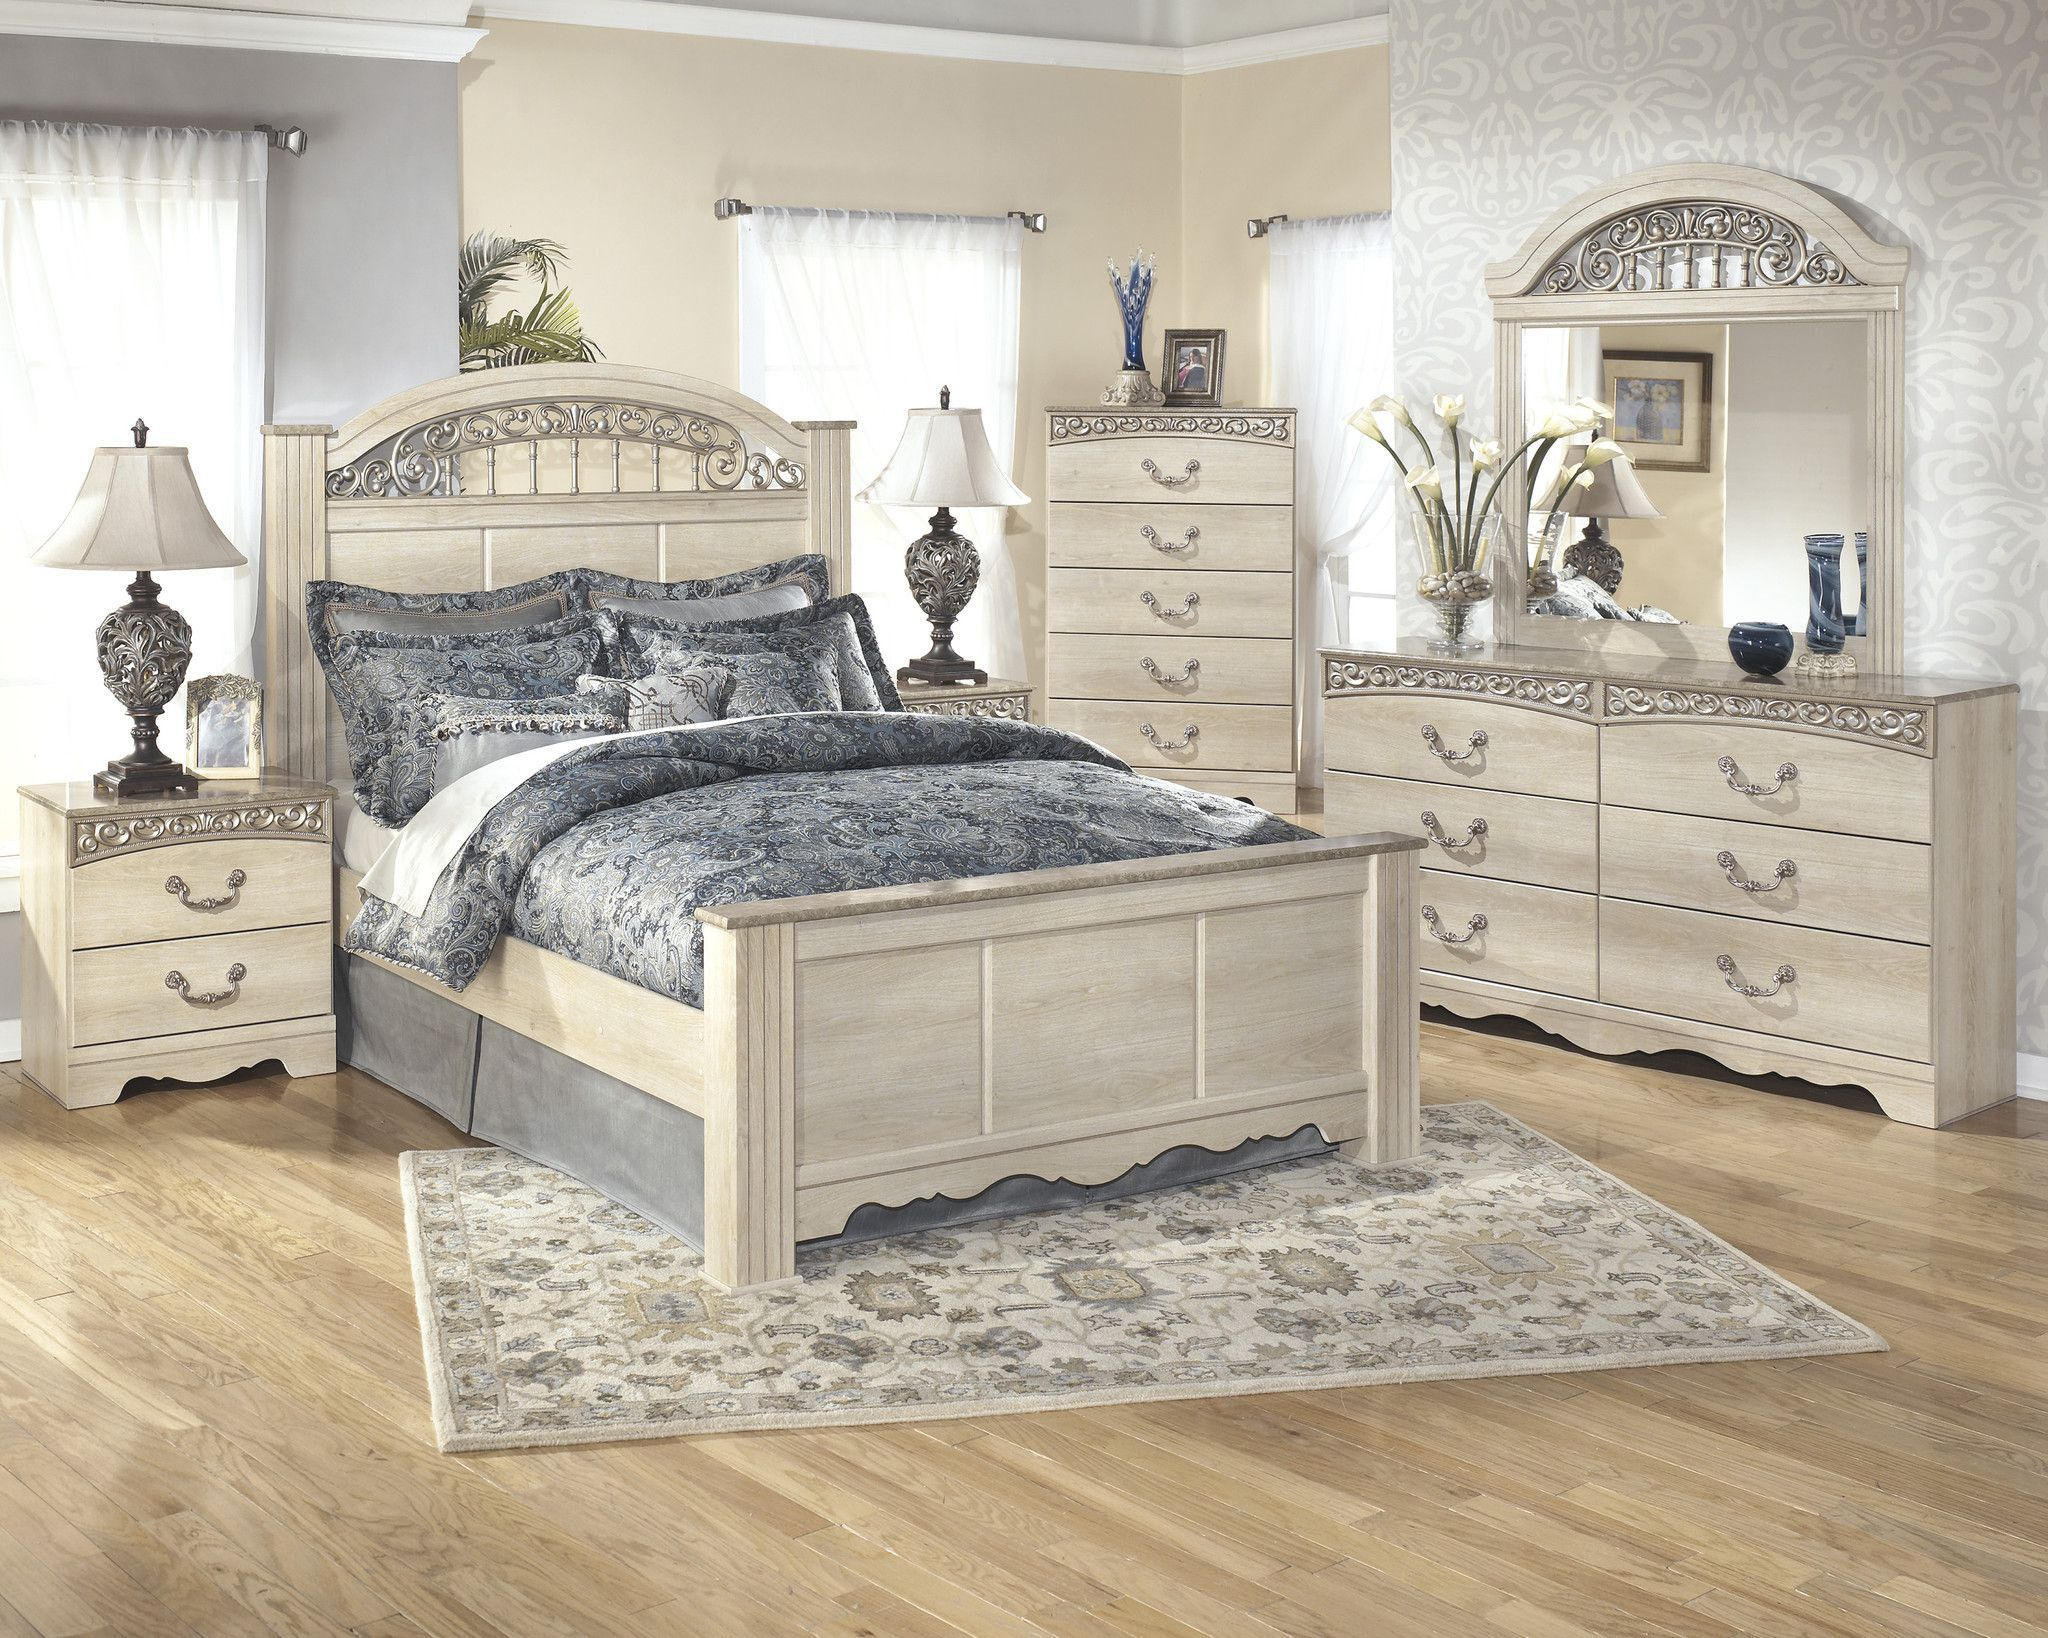 Ashley Furniture Catalina Bedroom Group | JACKS WAREHOUSE | Home ...